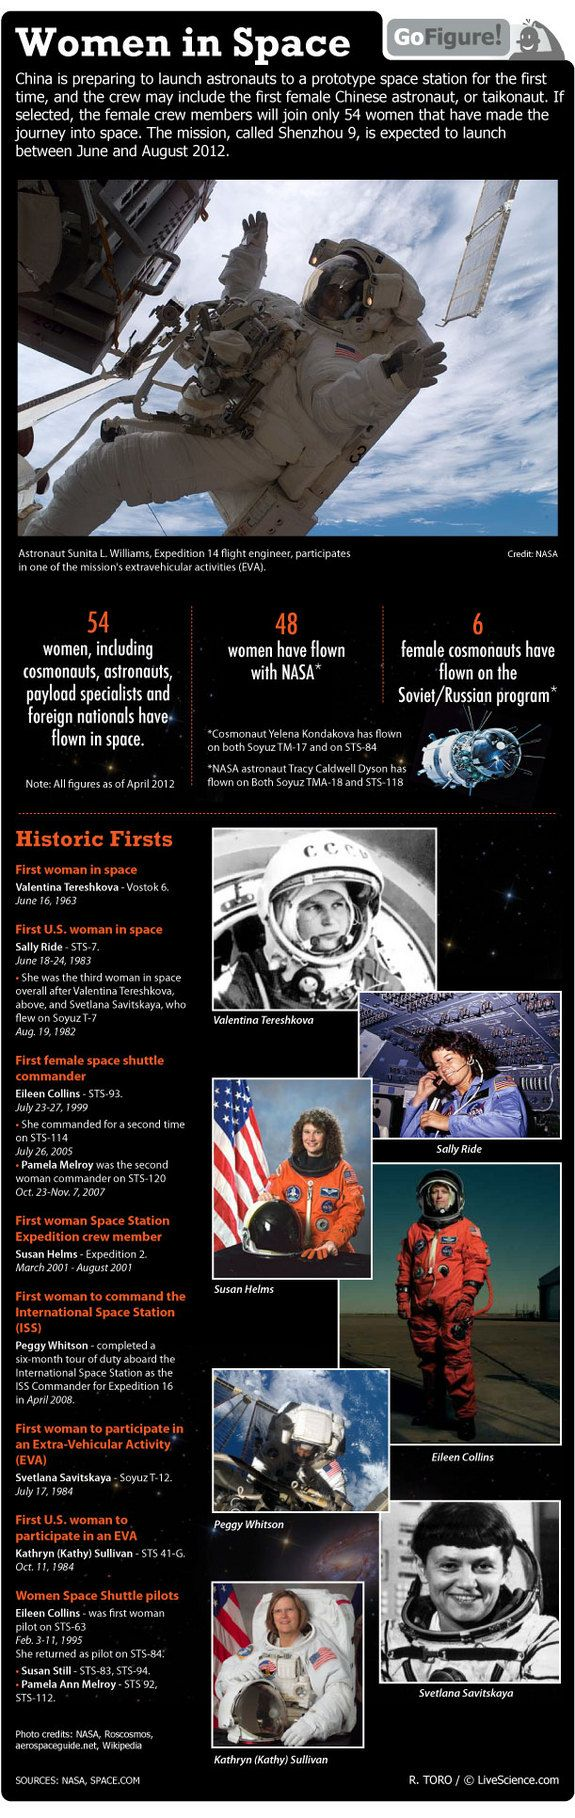 Meet some of the first female space explorers. (via LiveScience)